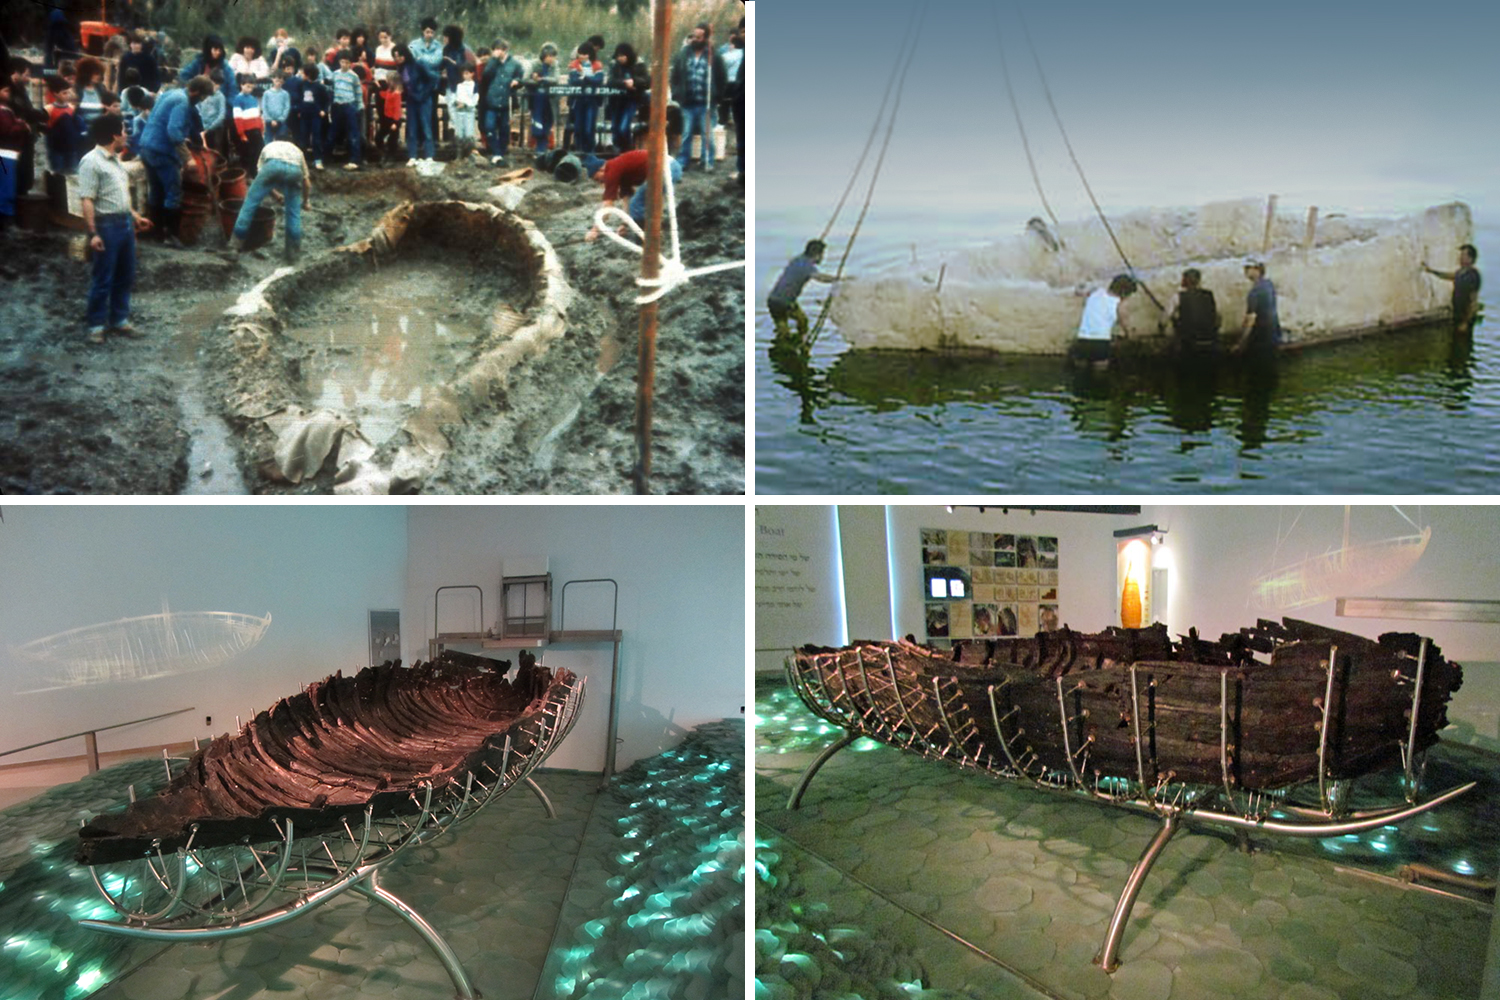 Discovery, recovery, and reconstruction of the Sea of Galilee boat on display at the Yigal Alon Museum in Kibbutz Ginosar, Israel.